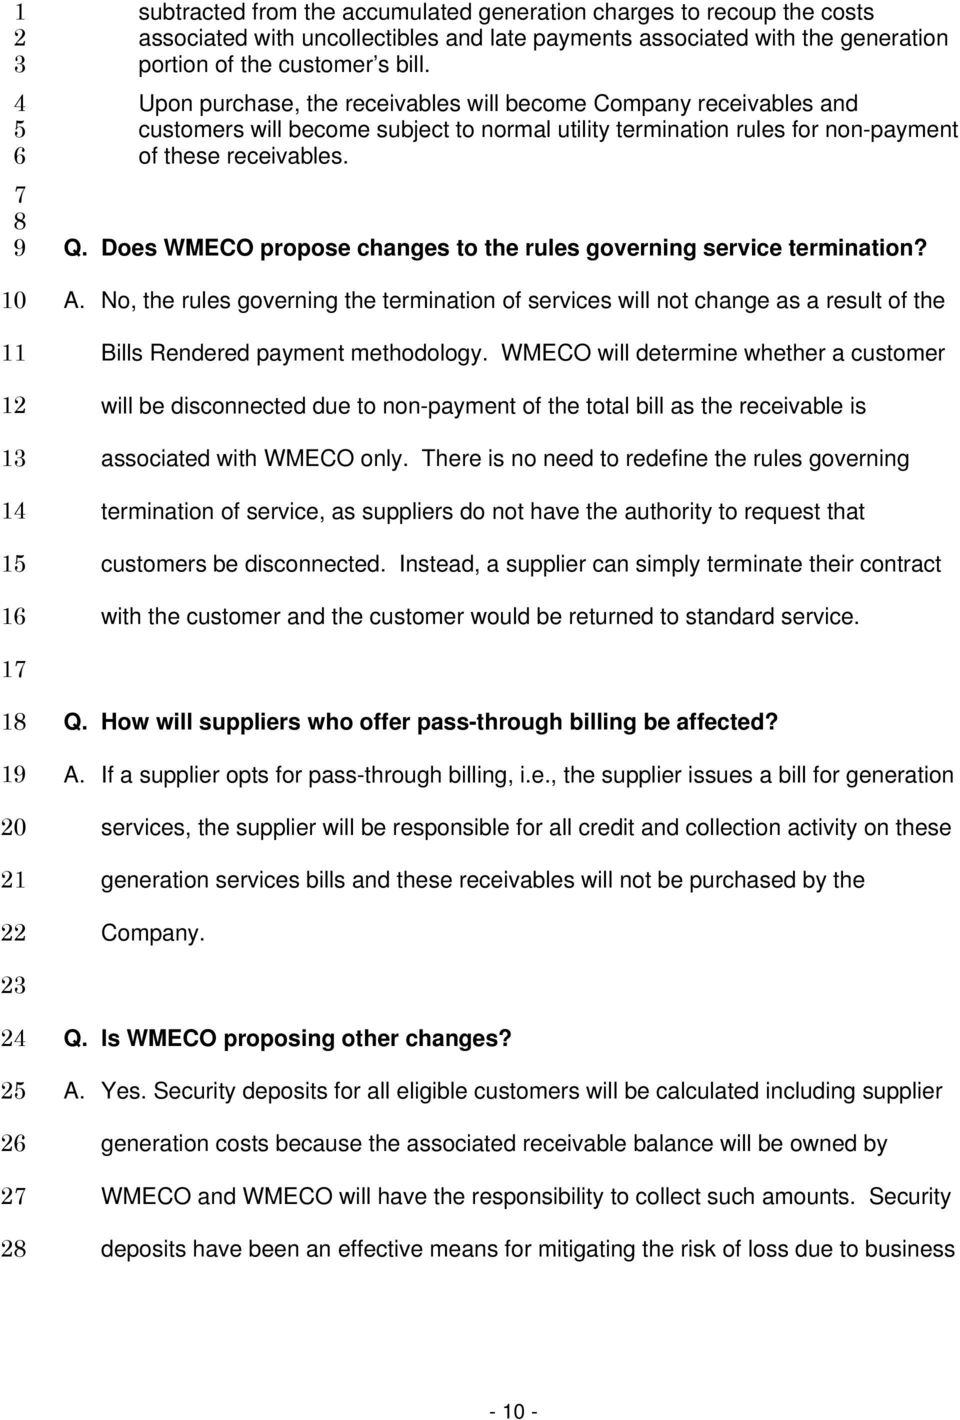 Does WMECO propose changes to the rules governing service termination? A. No, the rules governing the termination of services will not change as a result of the Bills Rendered payment methodology.